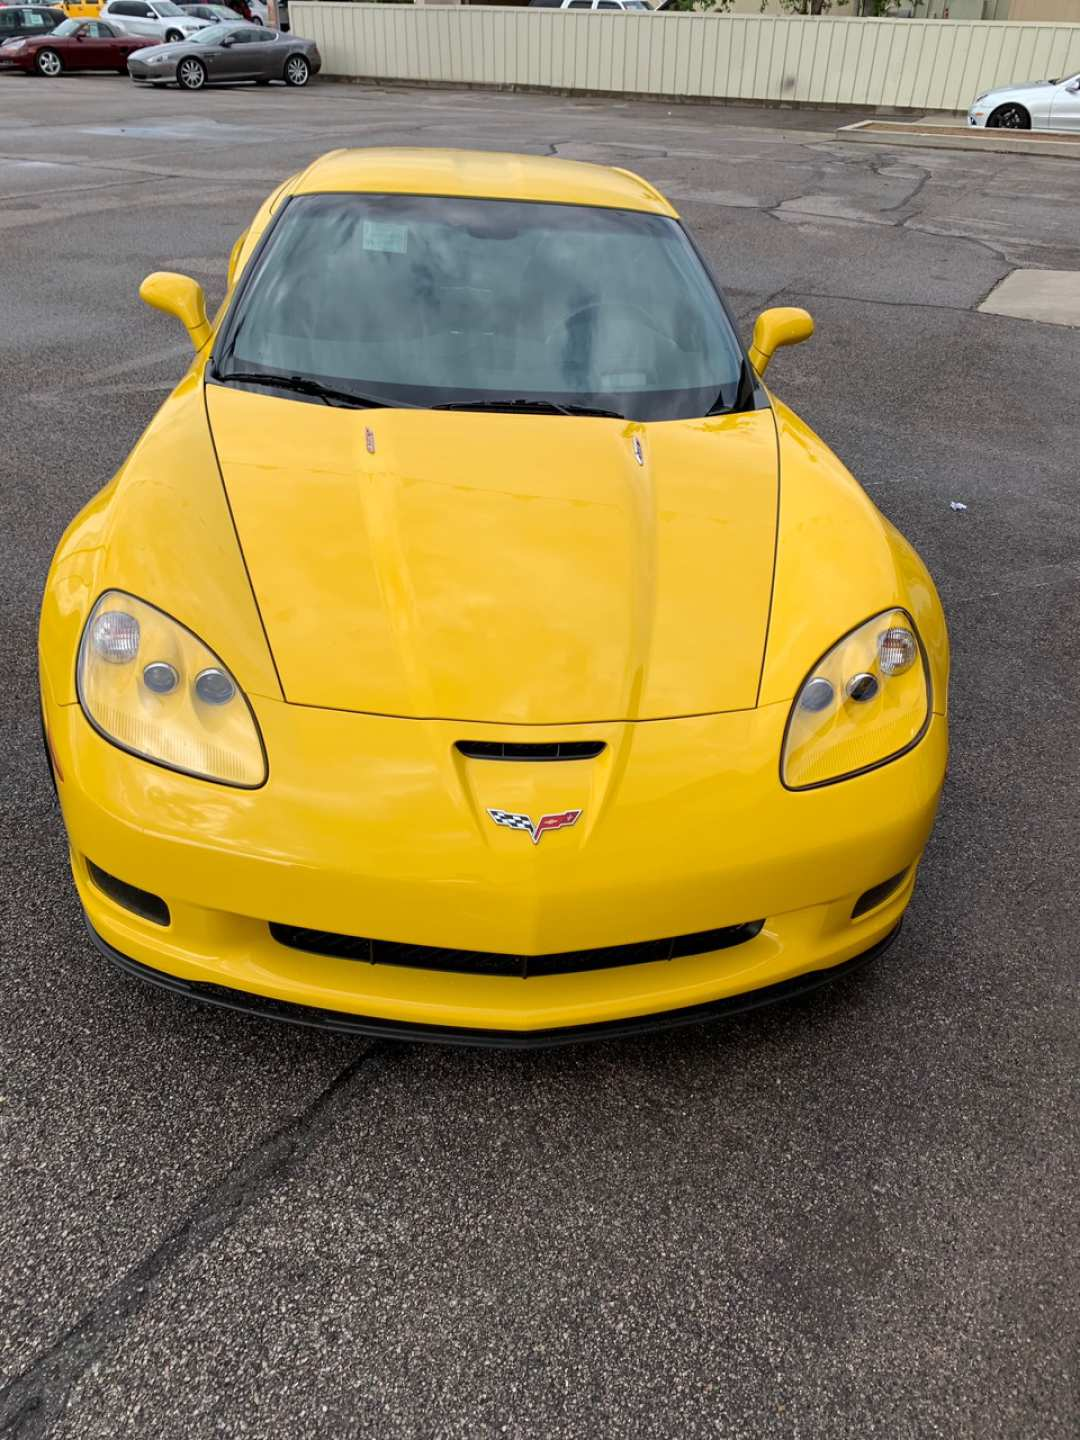 8th Image of a 2007 CHEVROLET CORVETTE Z06